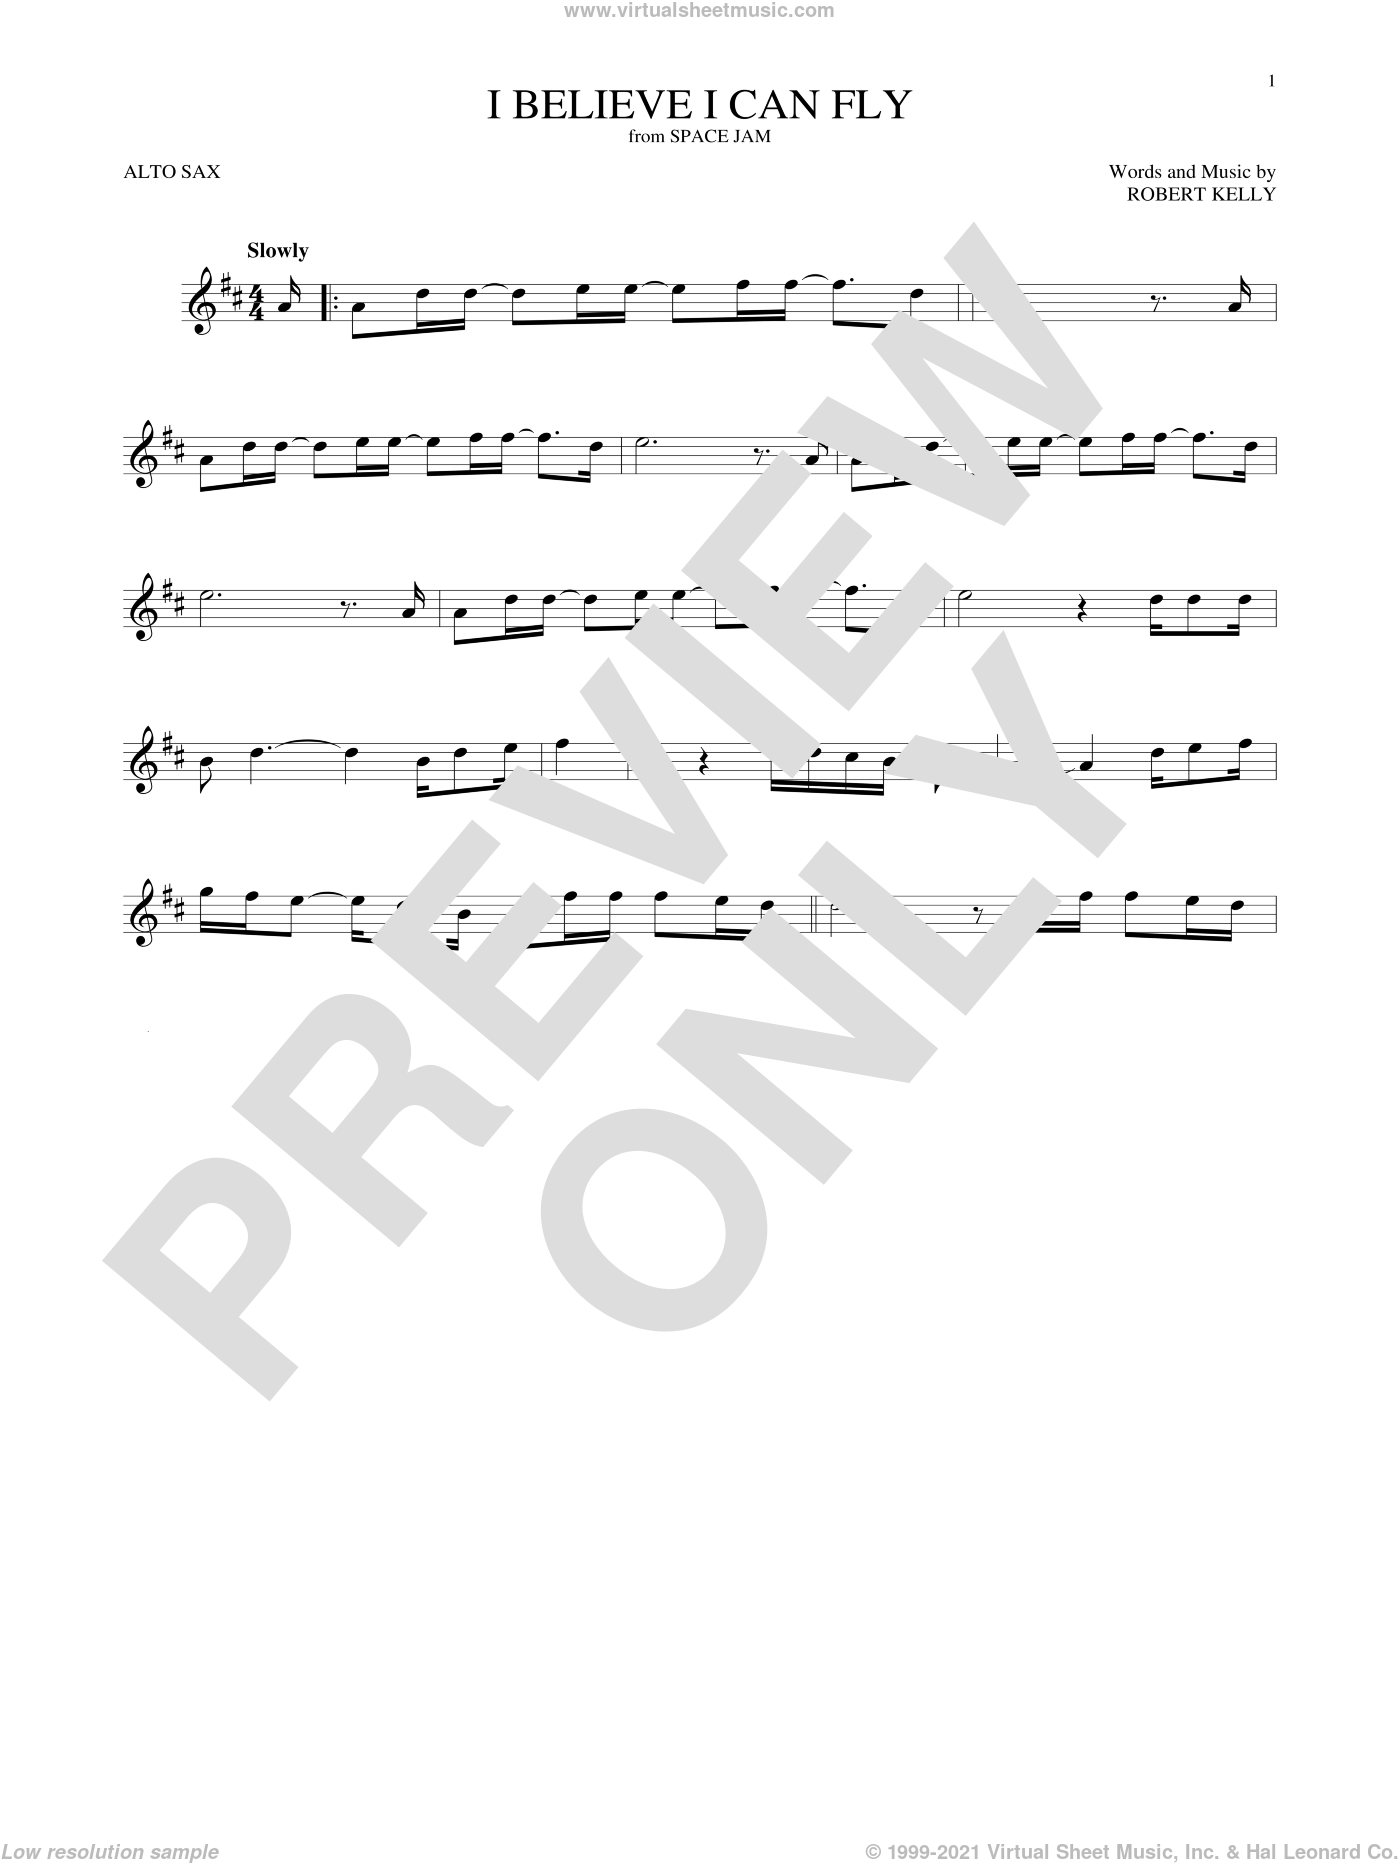 I Believe I Can Fly sheet music for alto saxophone solo by Robert Kelly and Jermaine Paul, intermediate skill level